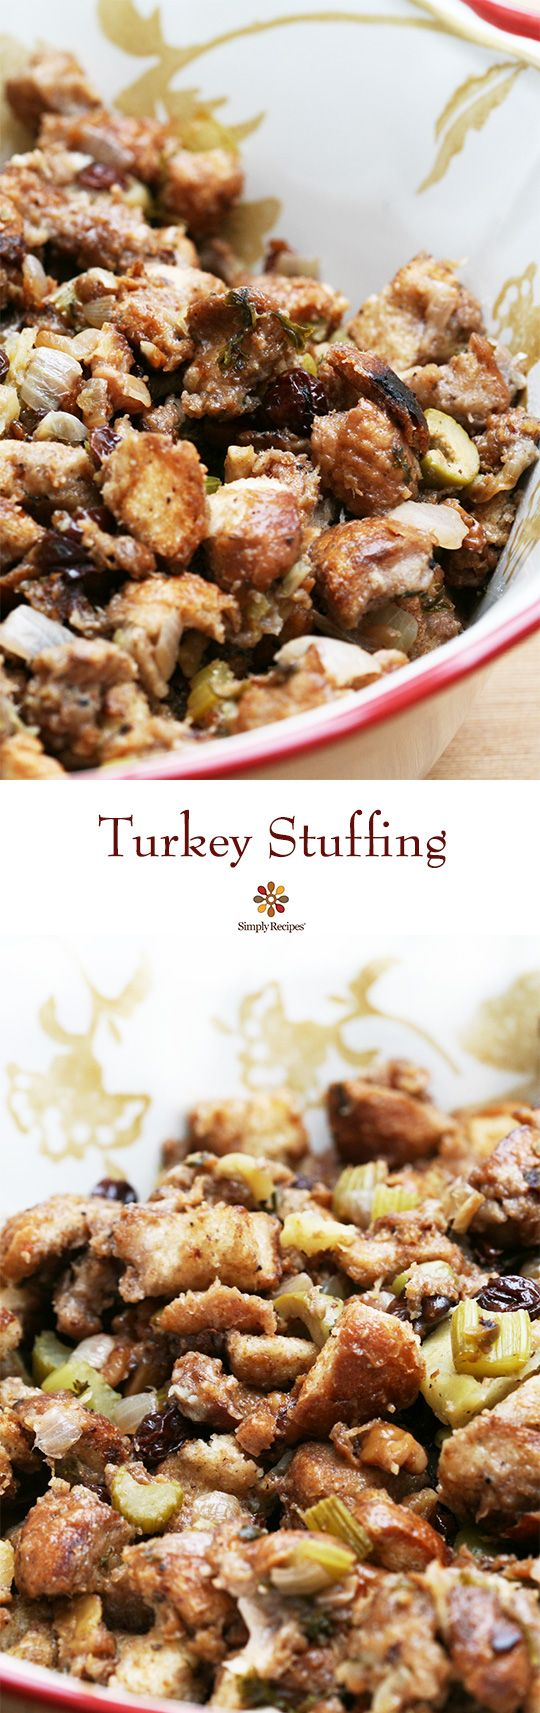 Mom's Turkey Stuffing ~ I've never tasted any turkey stuffing that has come close to as good as mom's. Classic Thanksgiving turkey stuffing recipe made with French bread cubes toasted in butter, walnuts, onion, celery, apple, green olives, and stock made from turkey giblets. ~ SimplyRecipes.com